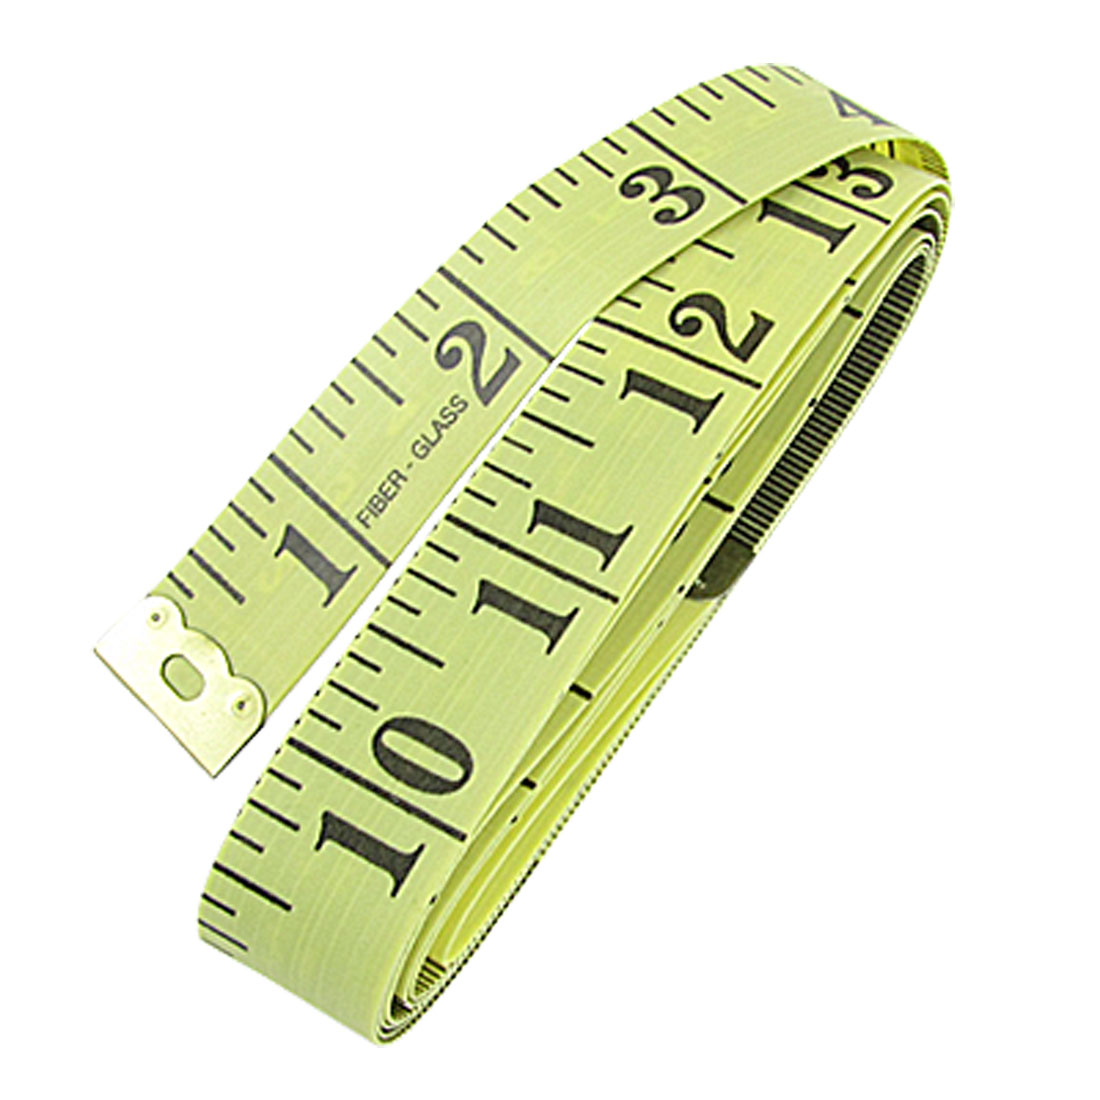 "Tailor Seamstress 60"" Tape Measure Cloth Ruler Yellow Black"